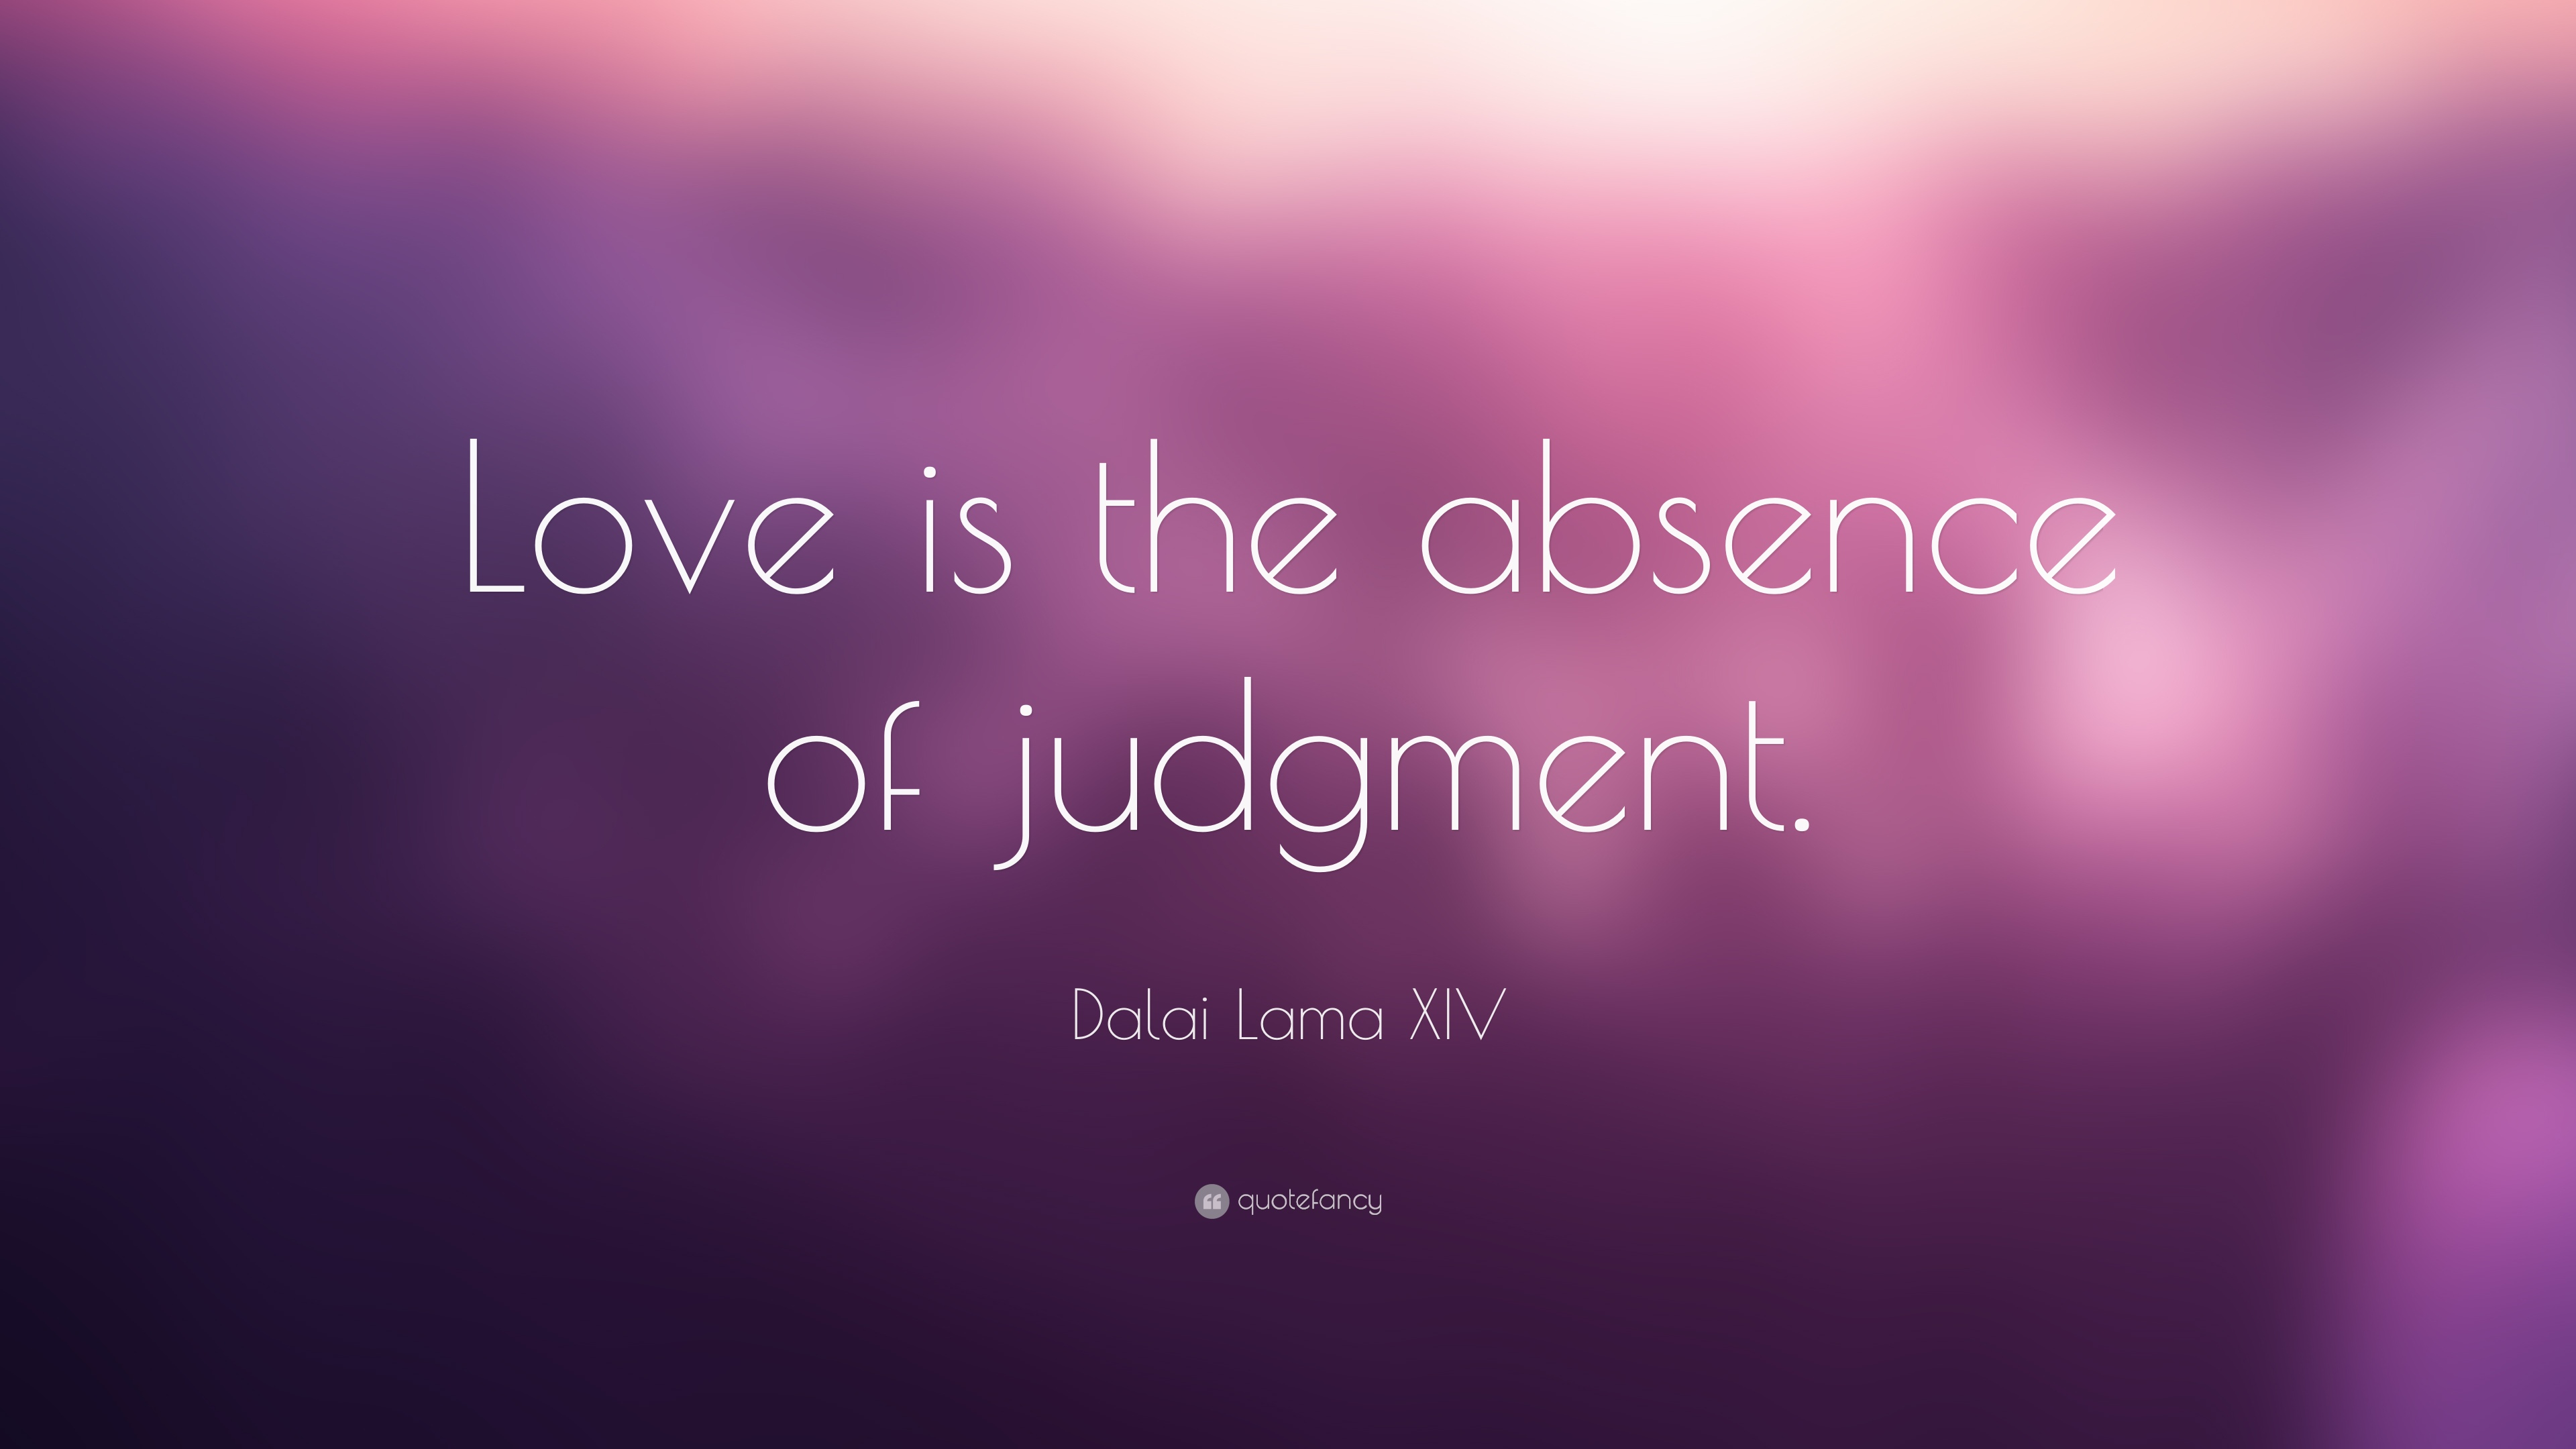 Love Quotes: ?Love is the absence of judgment.? Dalai Lama XIV